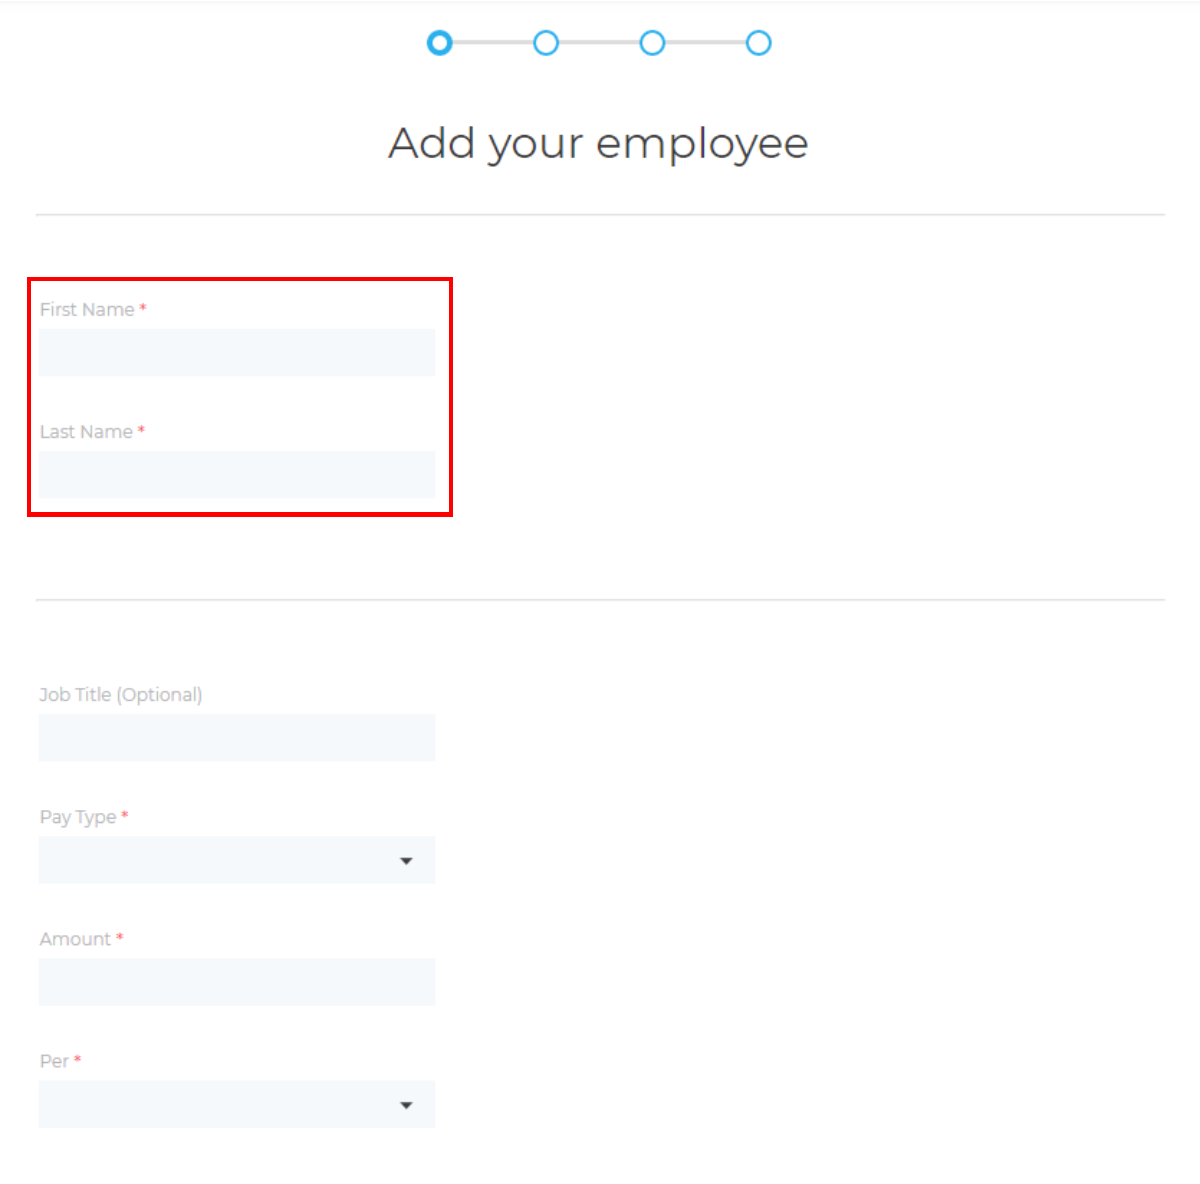 Enter_employees_name.png